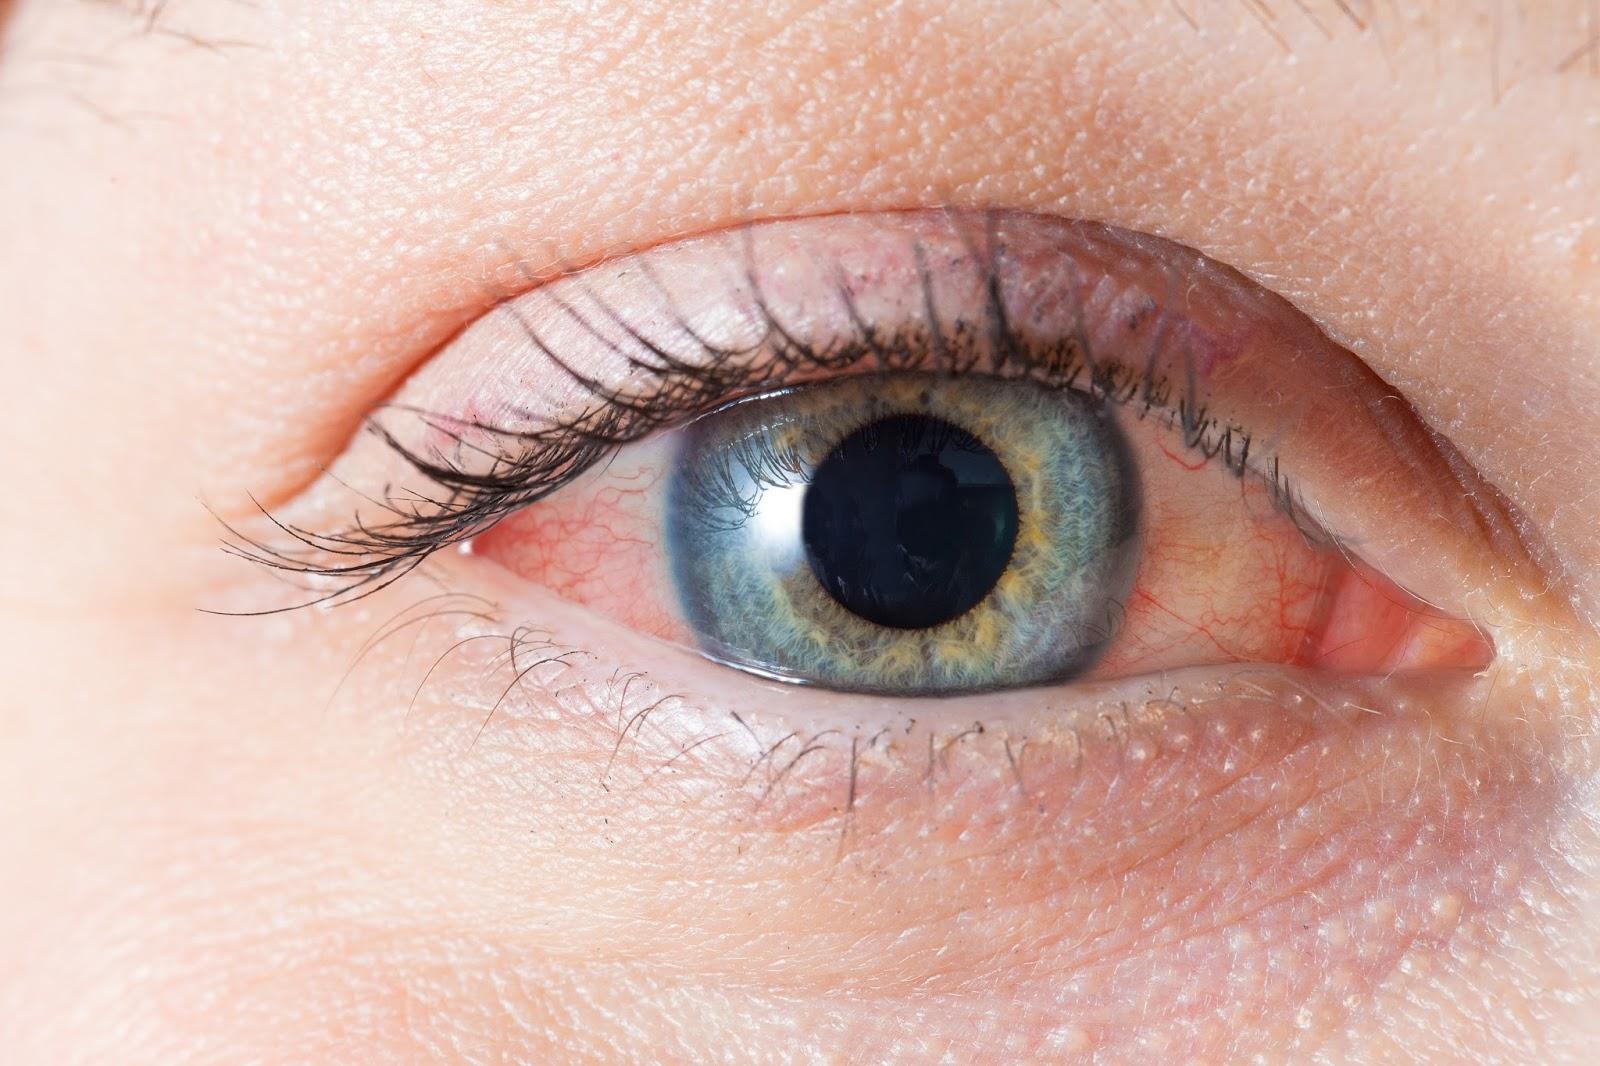 6 Fixes For Bloodshot Eyes (Without Eye Drops)